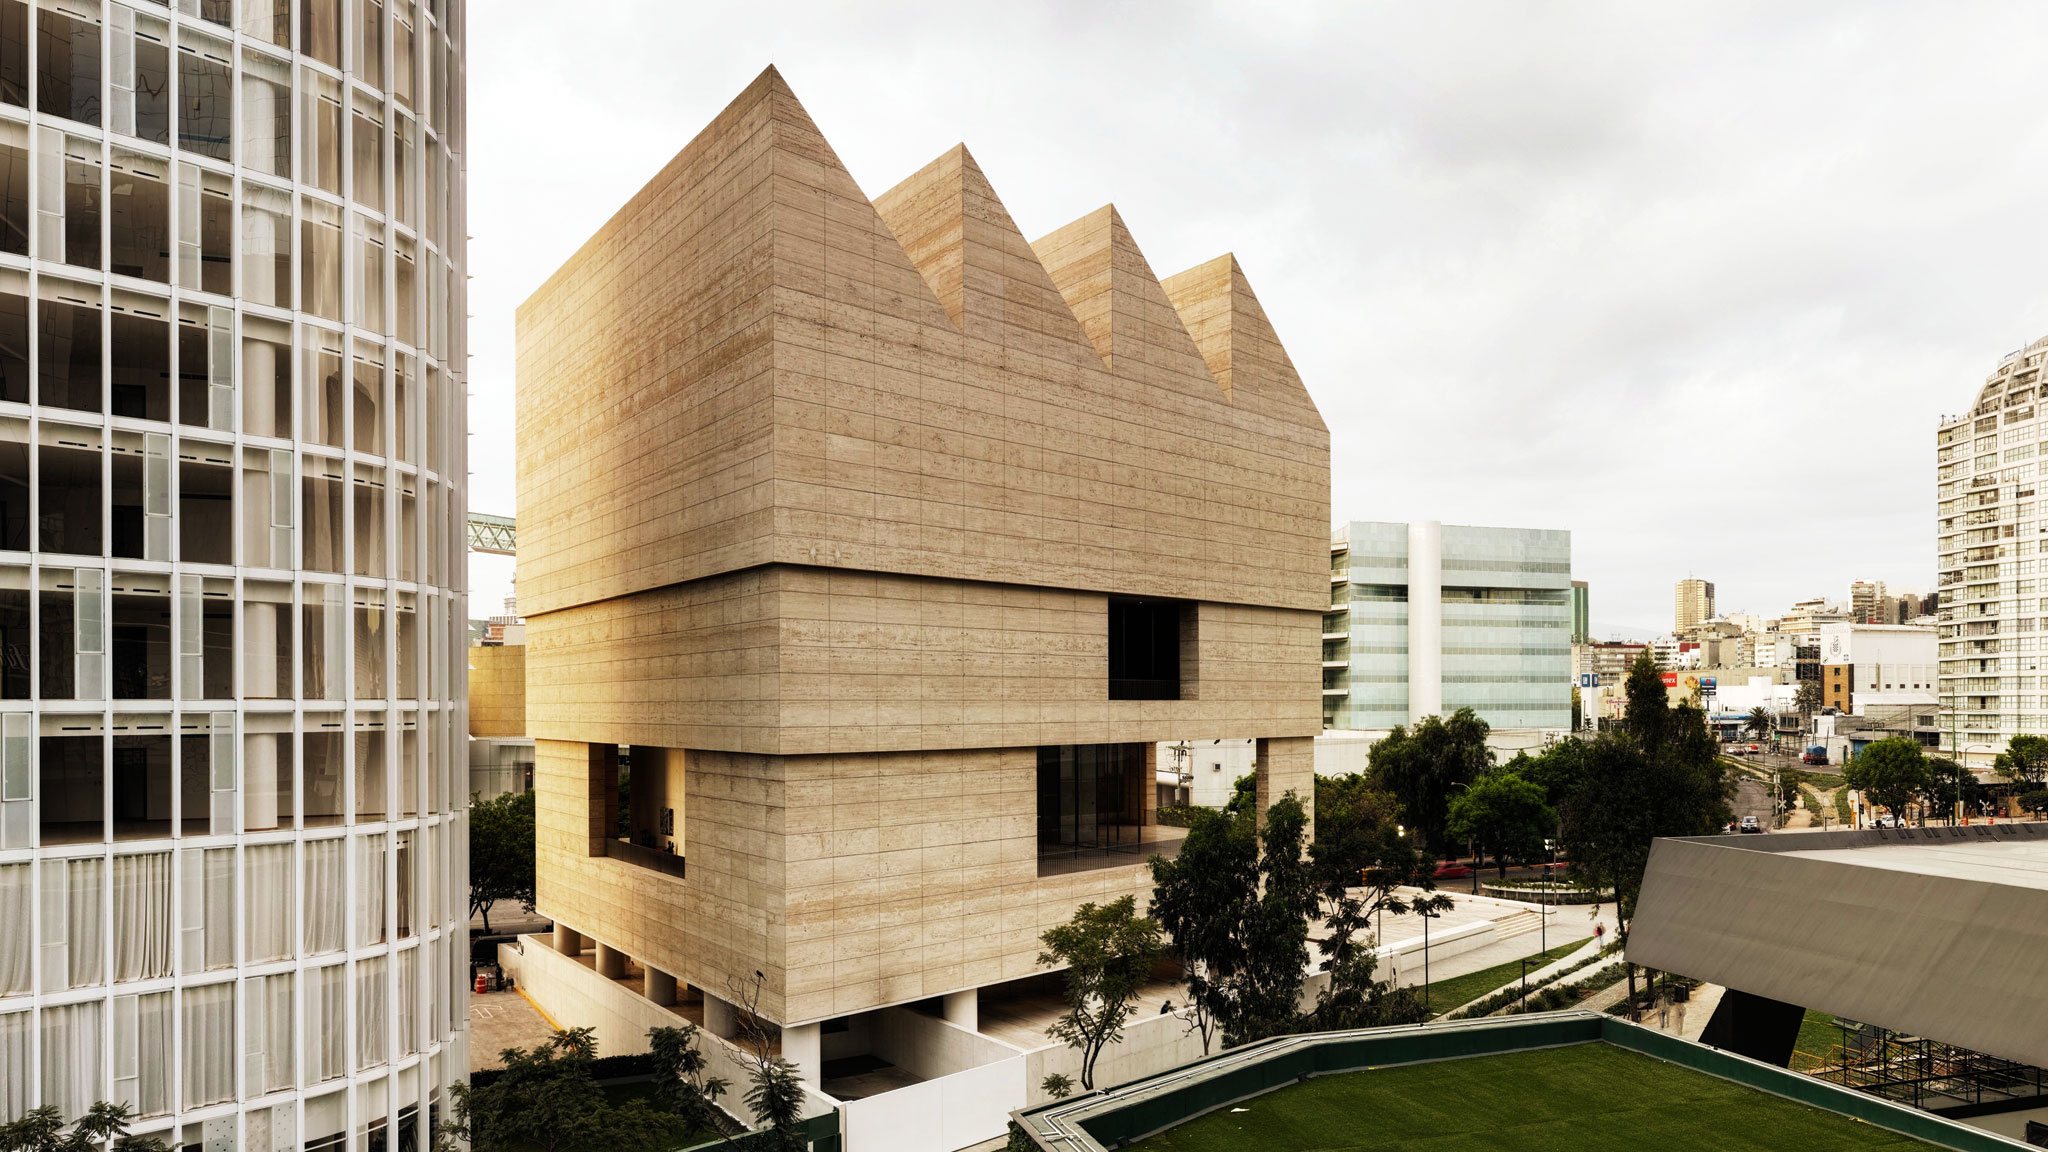 Contemporary Design Best Interior Designers in the World - David Chipperfield - Mexico City's Jumex Museum contemporary design Contemporary Design: Best Designers and Architects in the World Contemporary Design Best Interior Designers in the World David Chipperfield Mexico City   s Jumex Museum